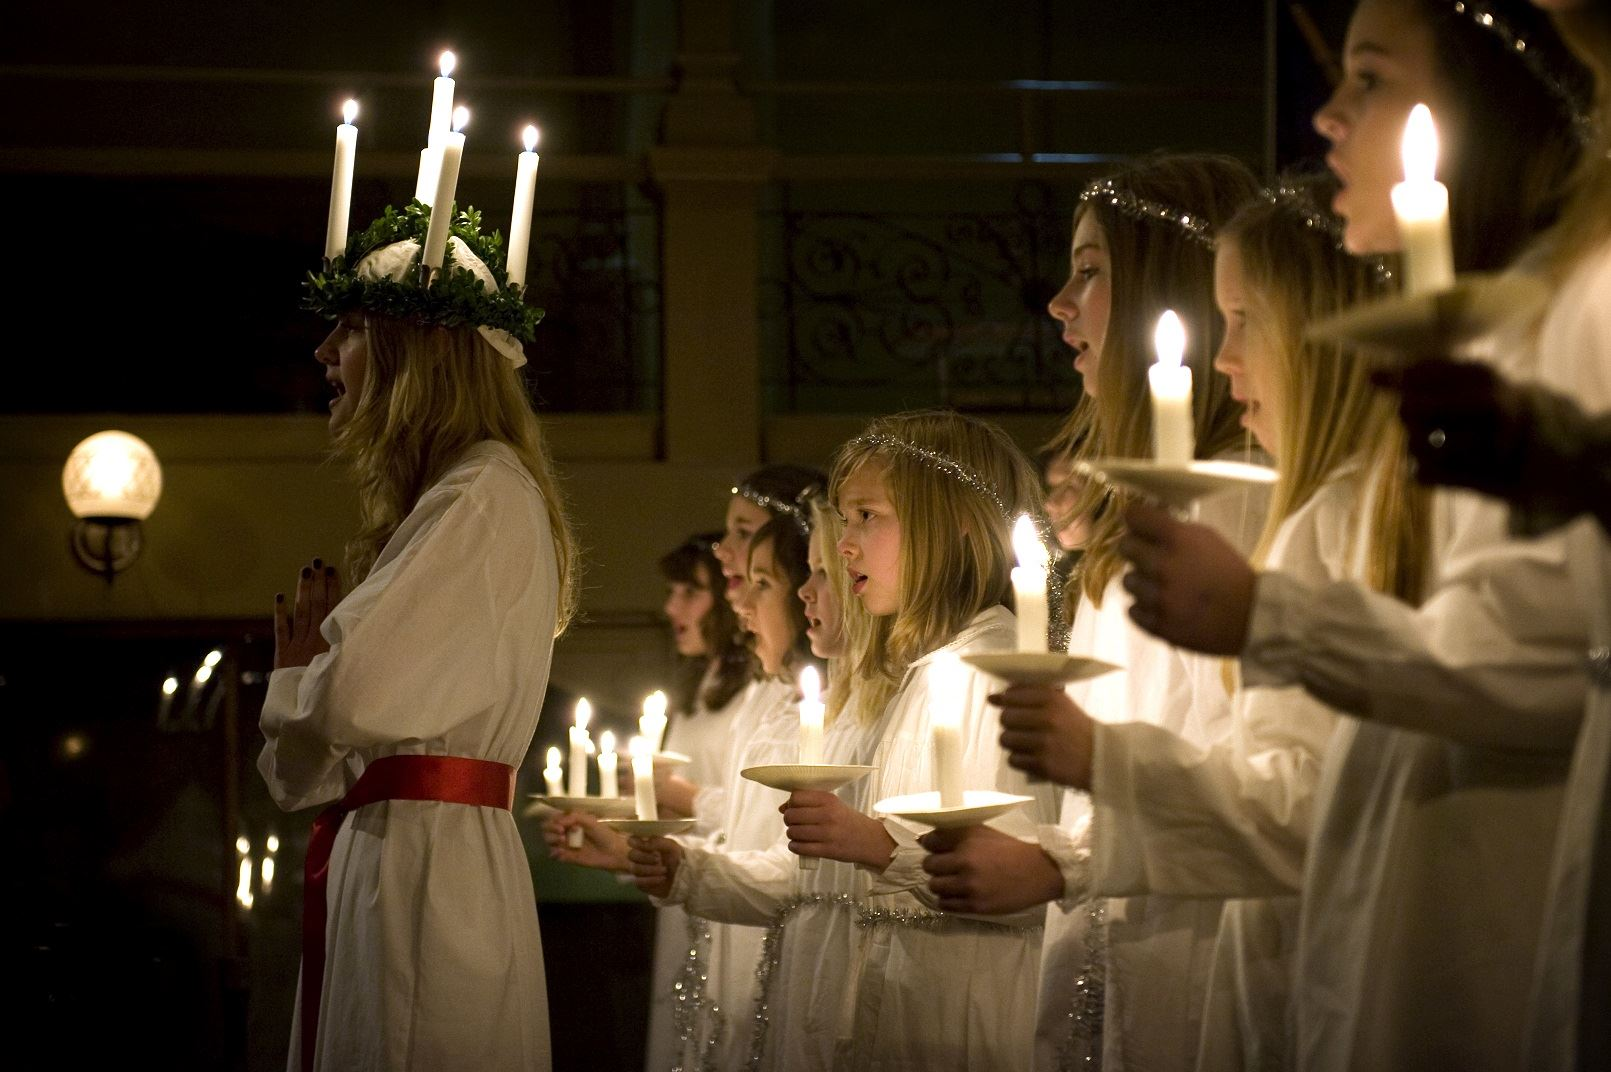 Lucia Concert with Folk Music